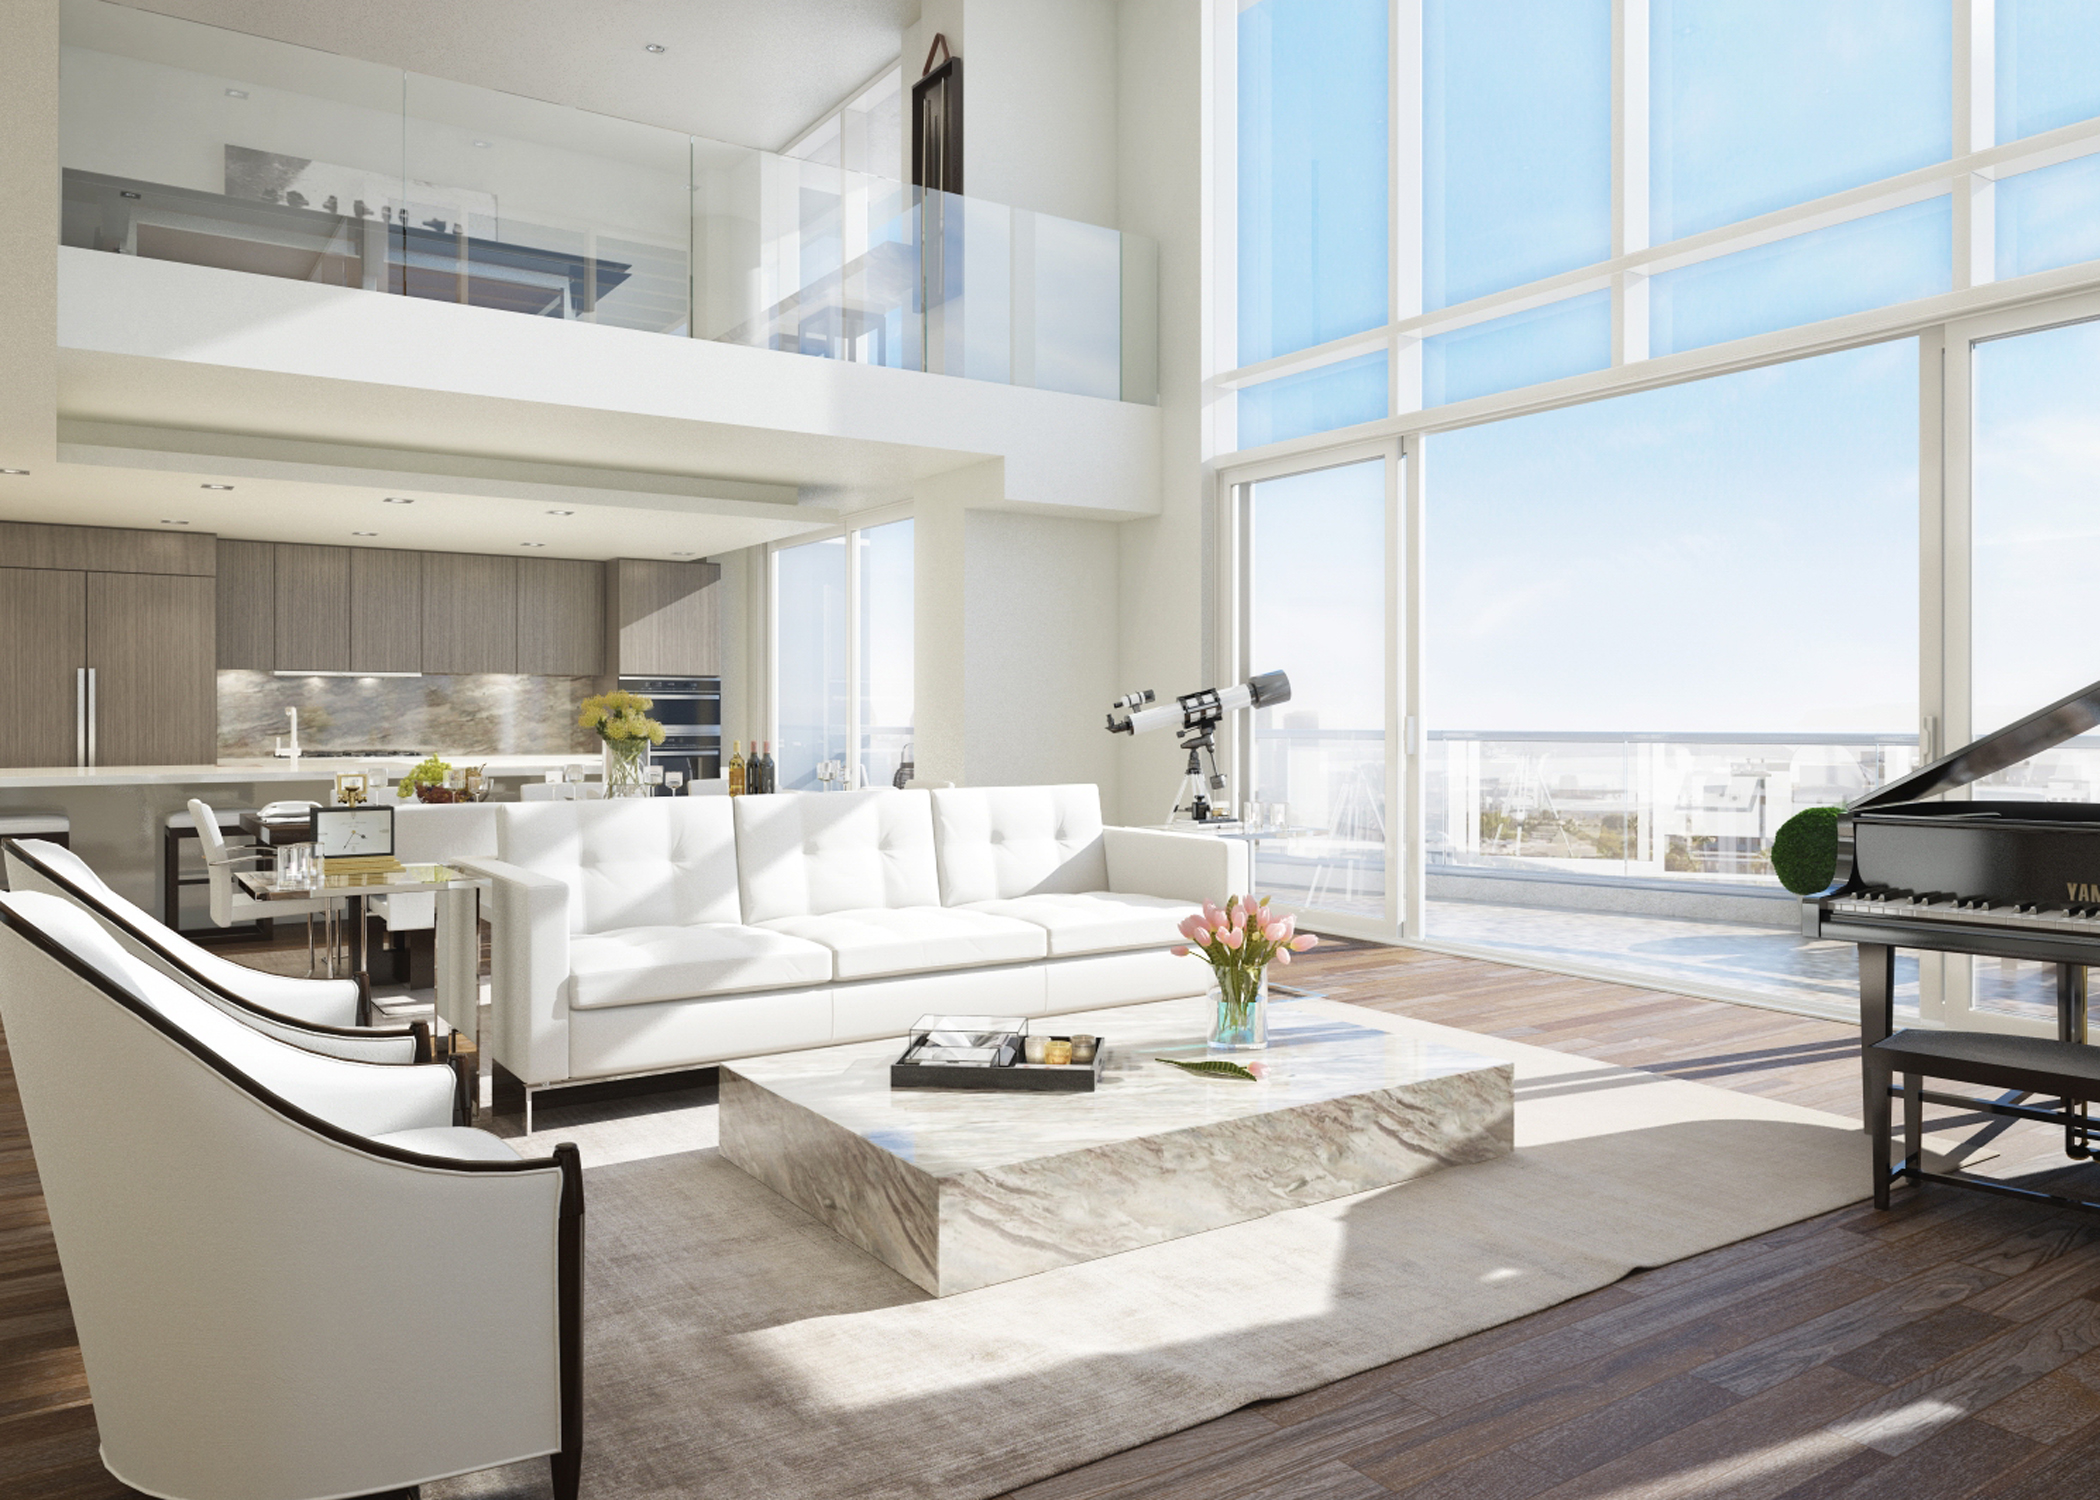 Rendering of the penthouse that will be in the project. Four penthouses will be featured.